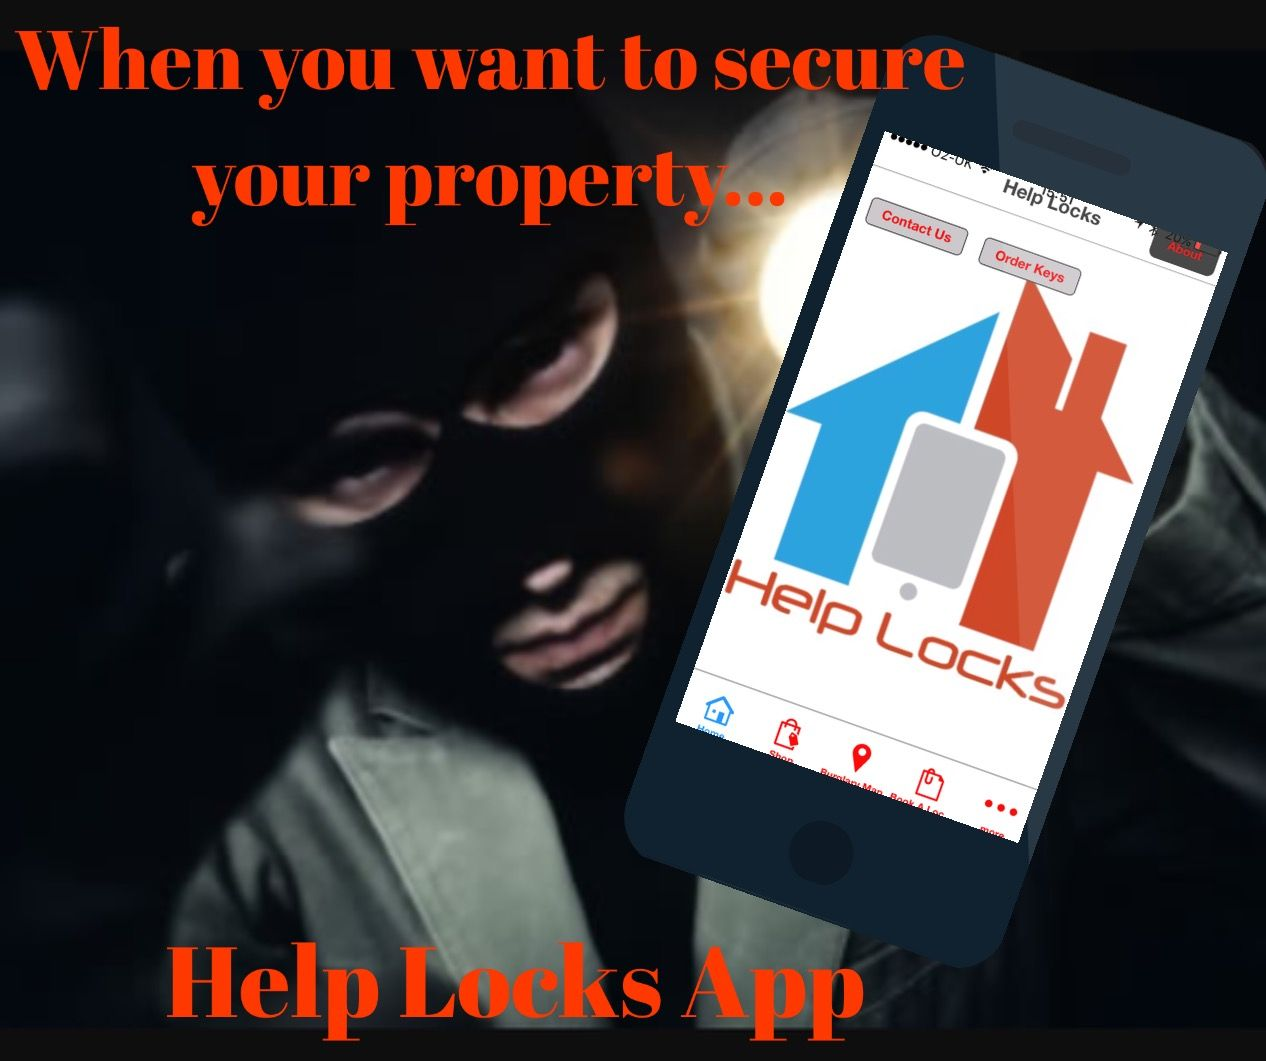 App, Crime, Security